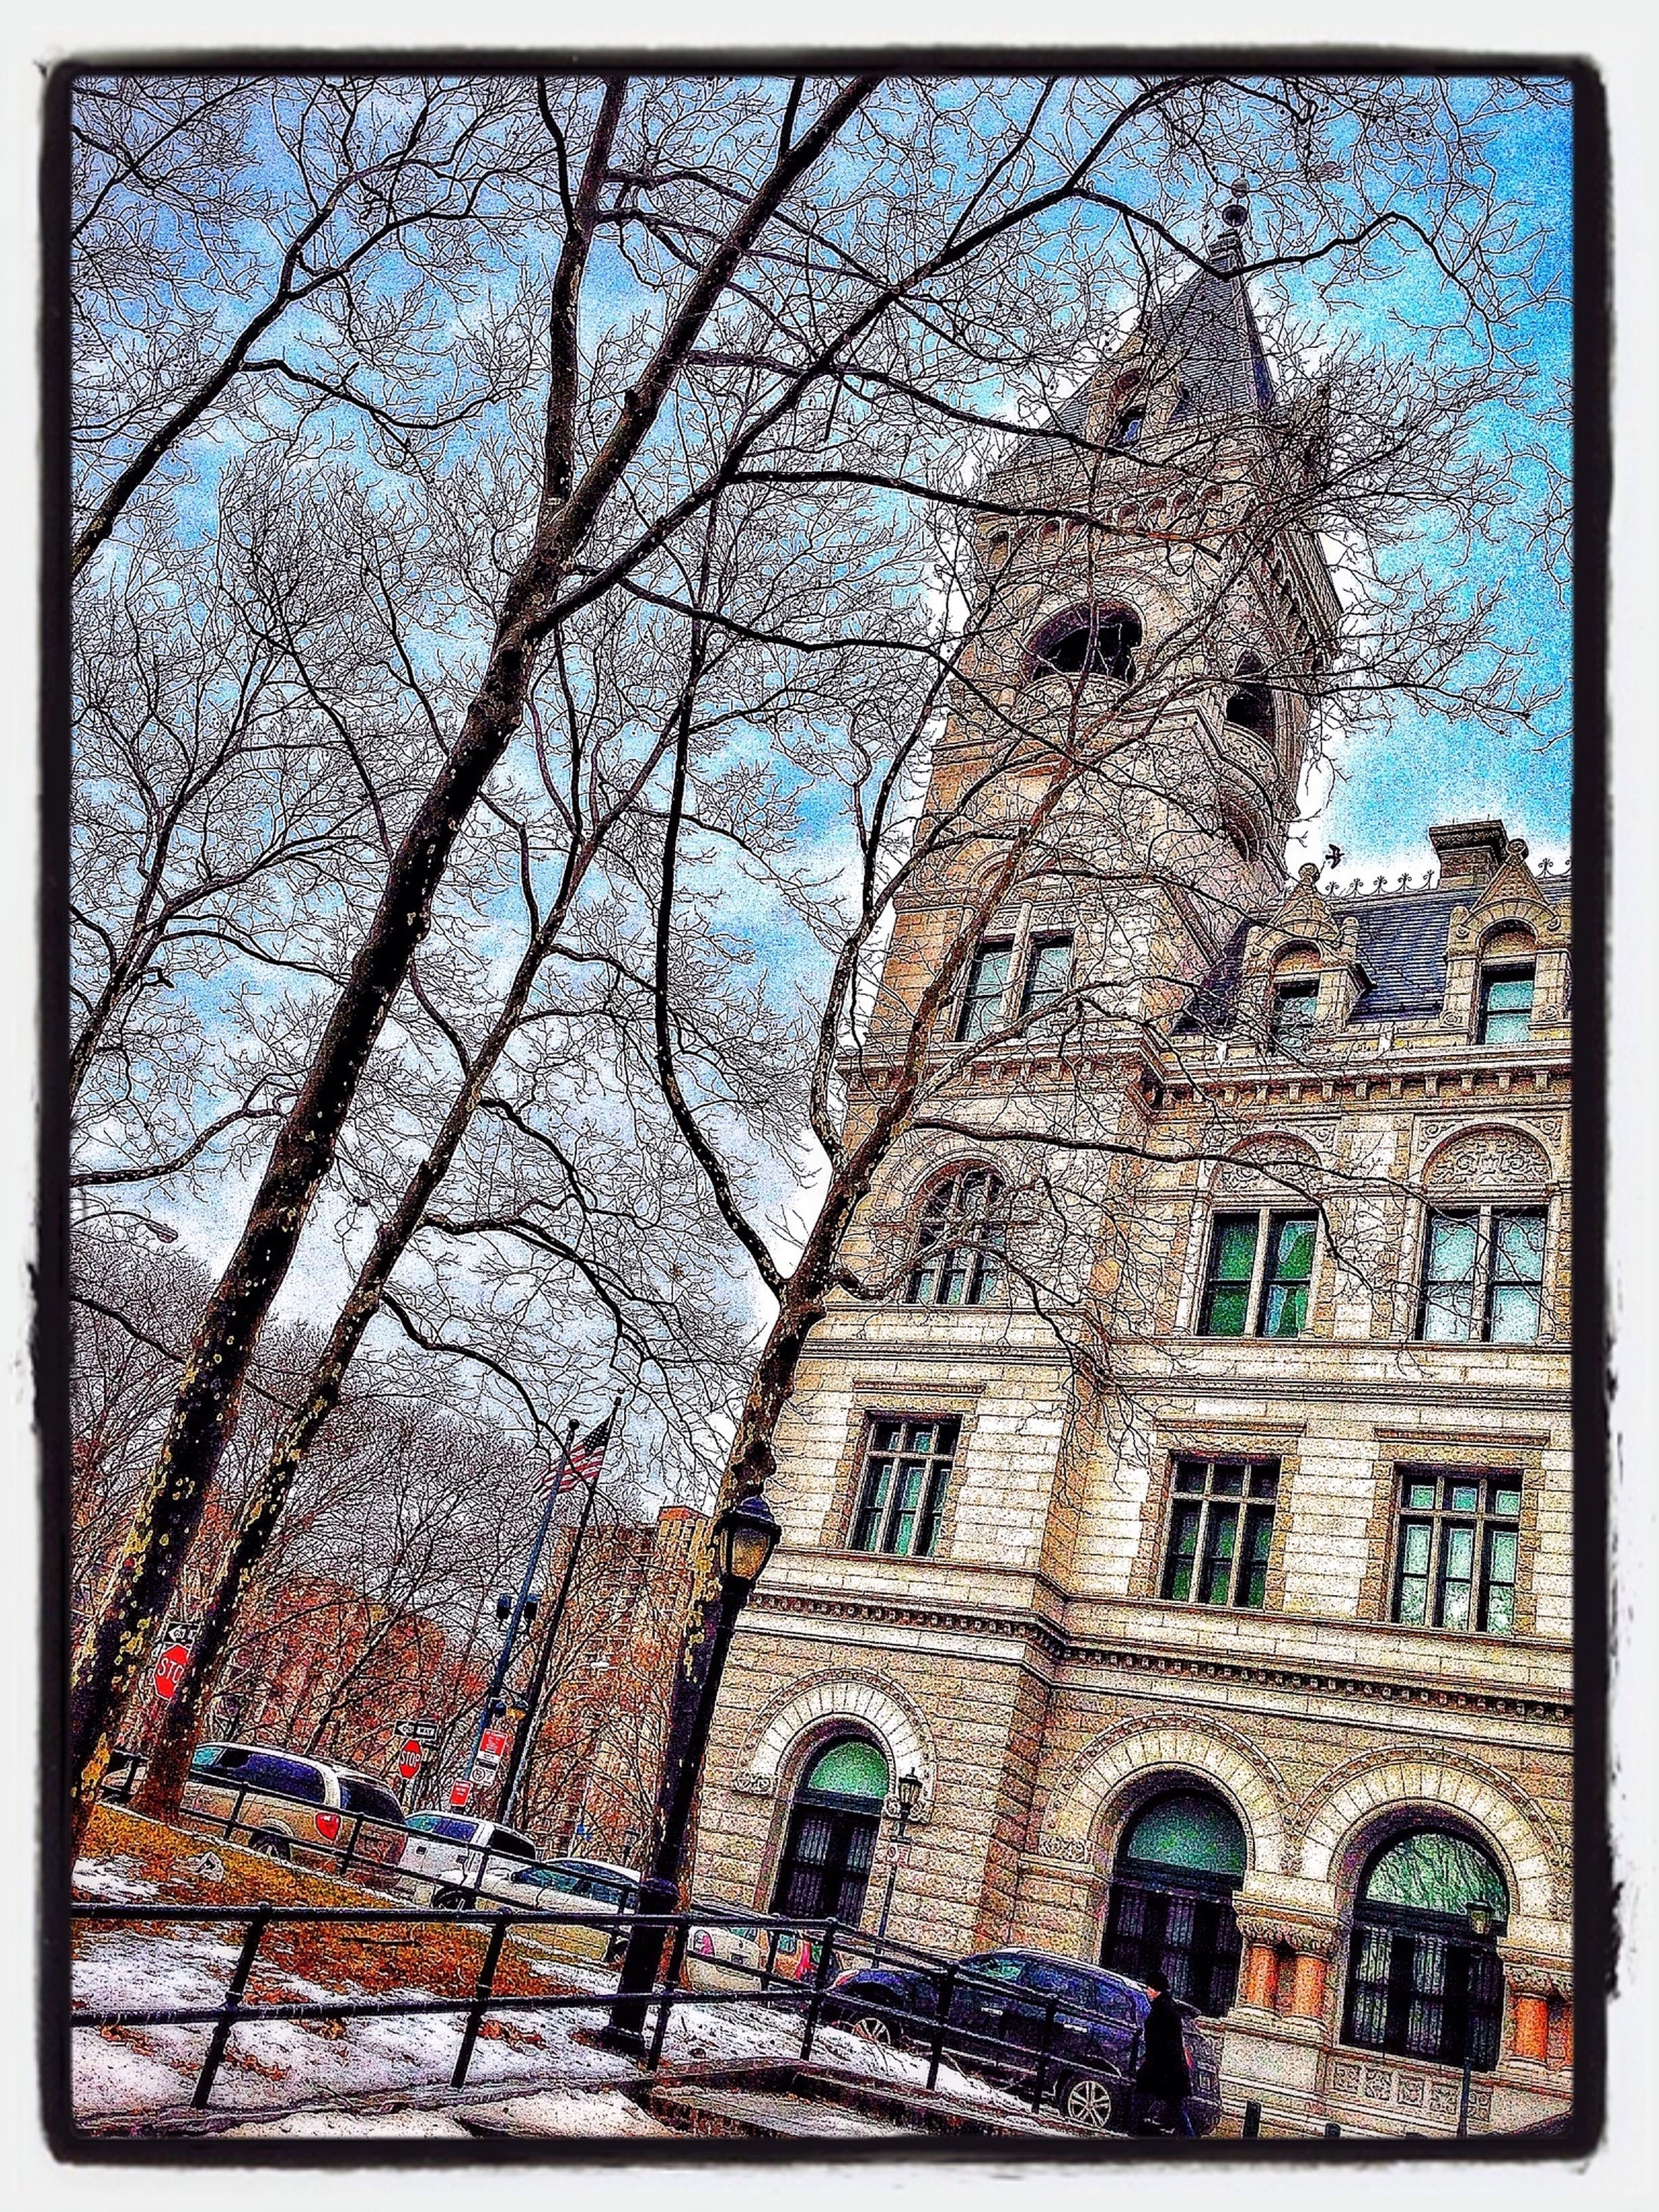 transfer print, building exterior, architecture, built structure, tree, auto post production filter, bare tree, blue, sky, low angle view, branch, day, window, city, church, outdoors, building, arch, religion, history